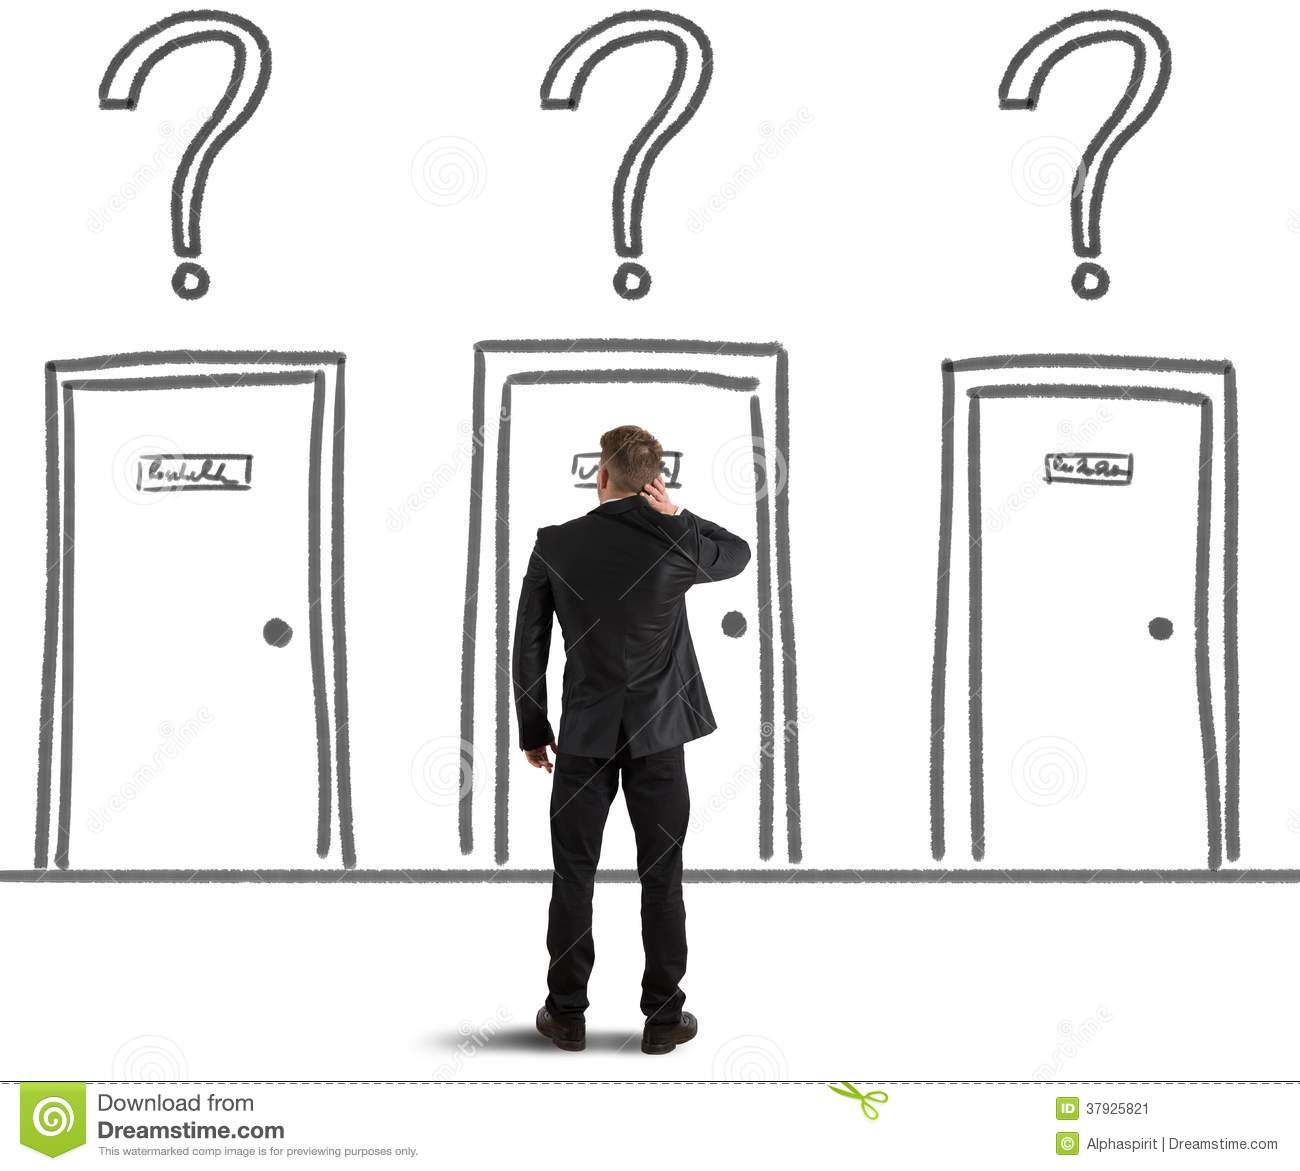 Businessman choosing the right door  sc 1 st  Dreamstime.com & Businessman Choosing The Right Door Stock Image - Image of business ...